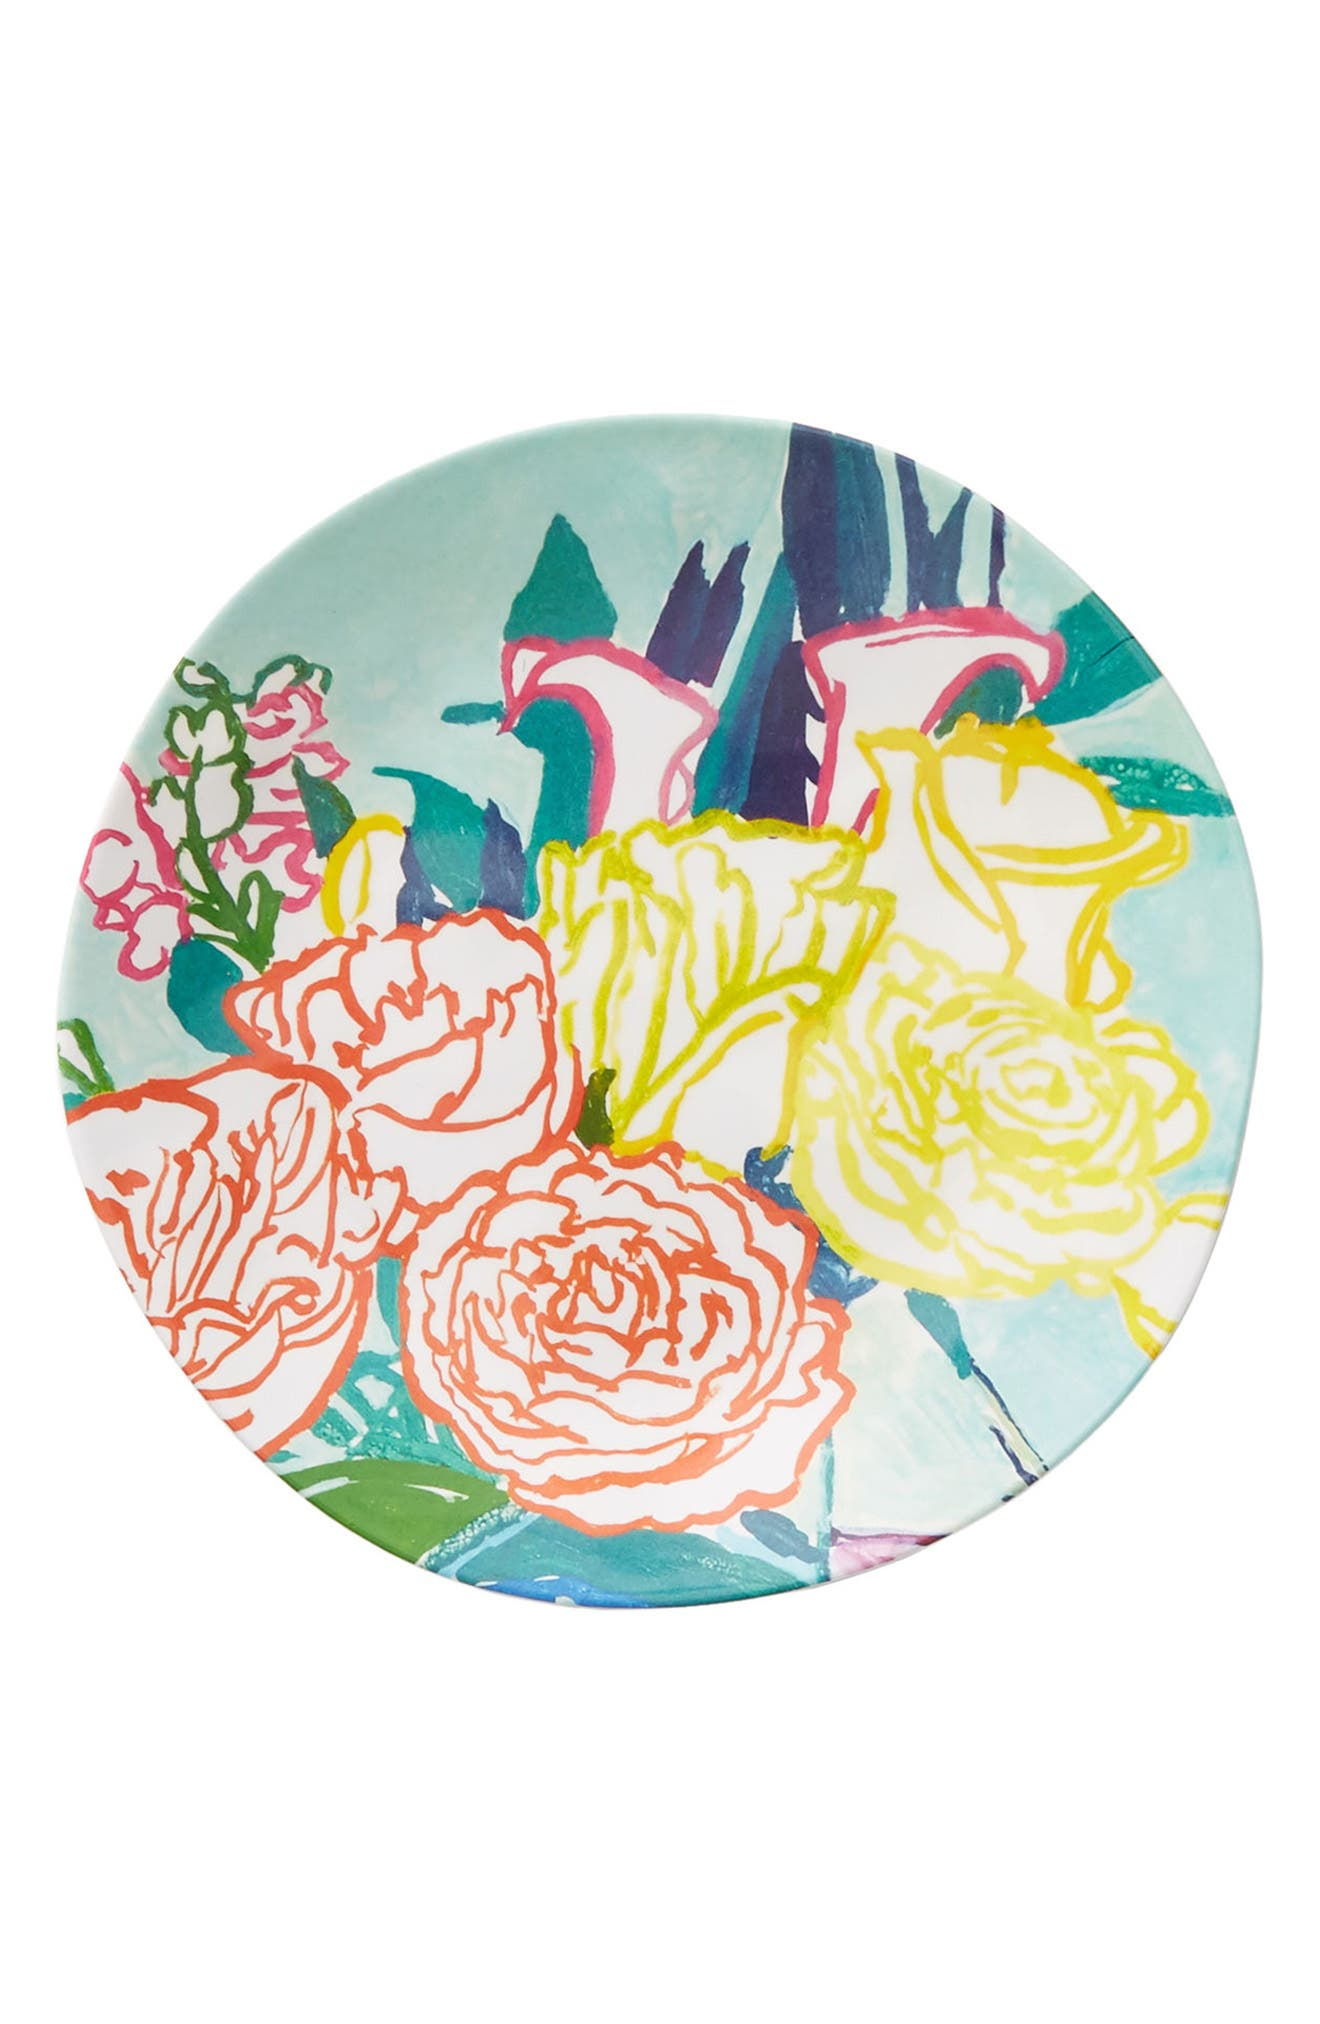 Paint + Petals Melamine Plate,                             Alternate thumbnail 4, color,                             Turquoise